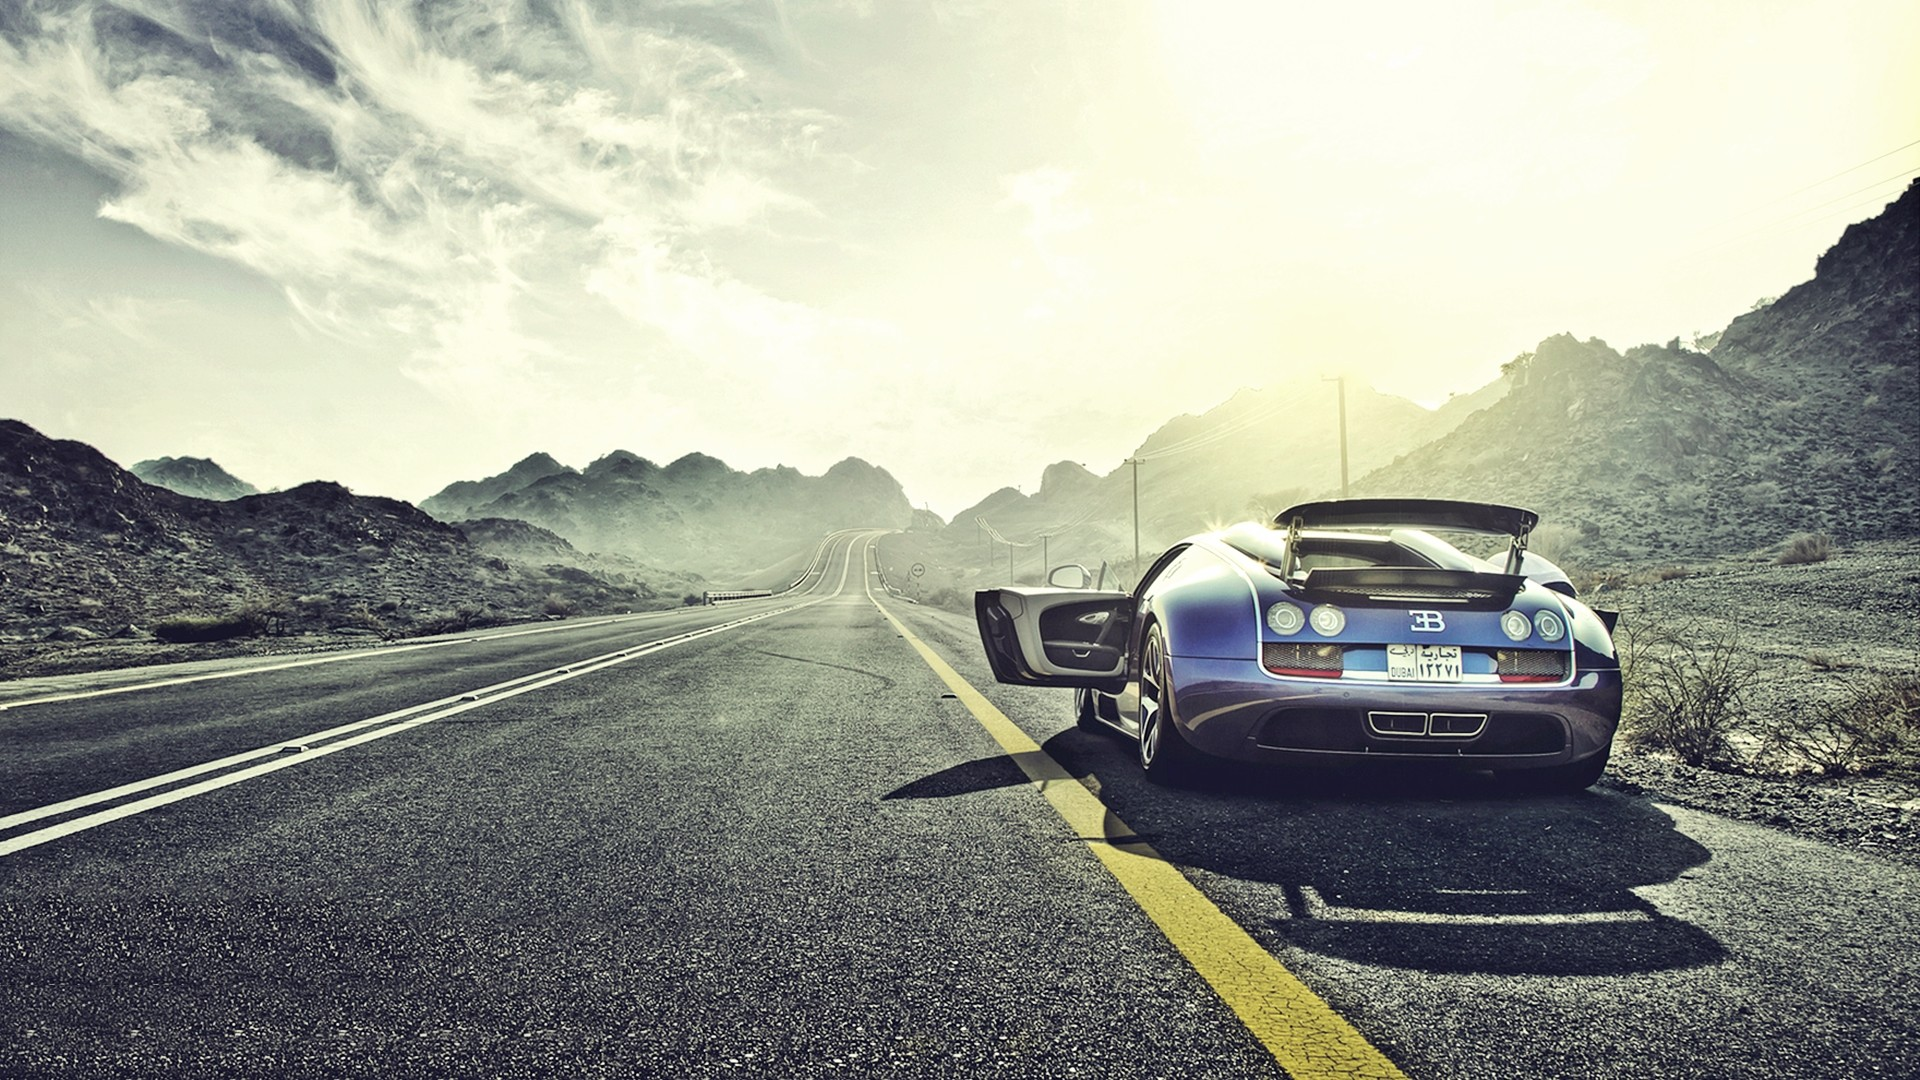 50 Cool Bugatti Wallpapers Backgrounds For Free Download Images, Photos, Reviews